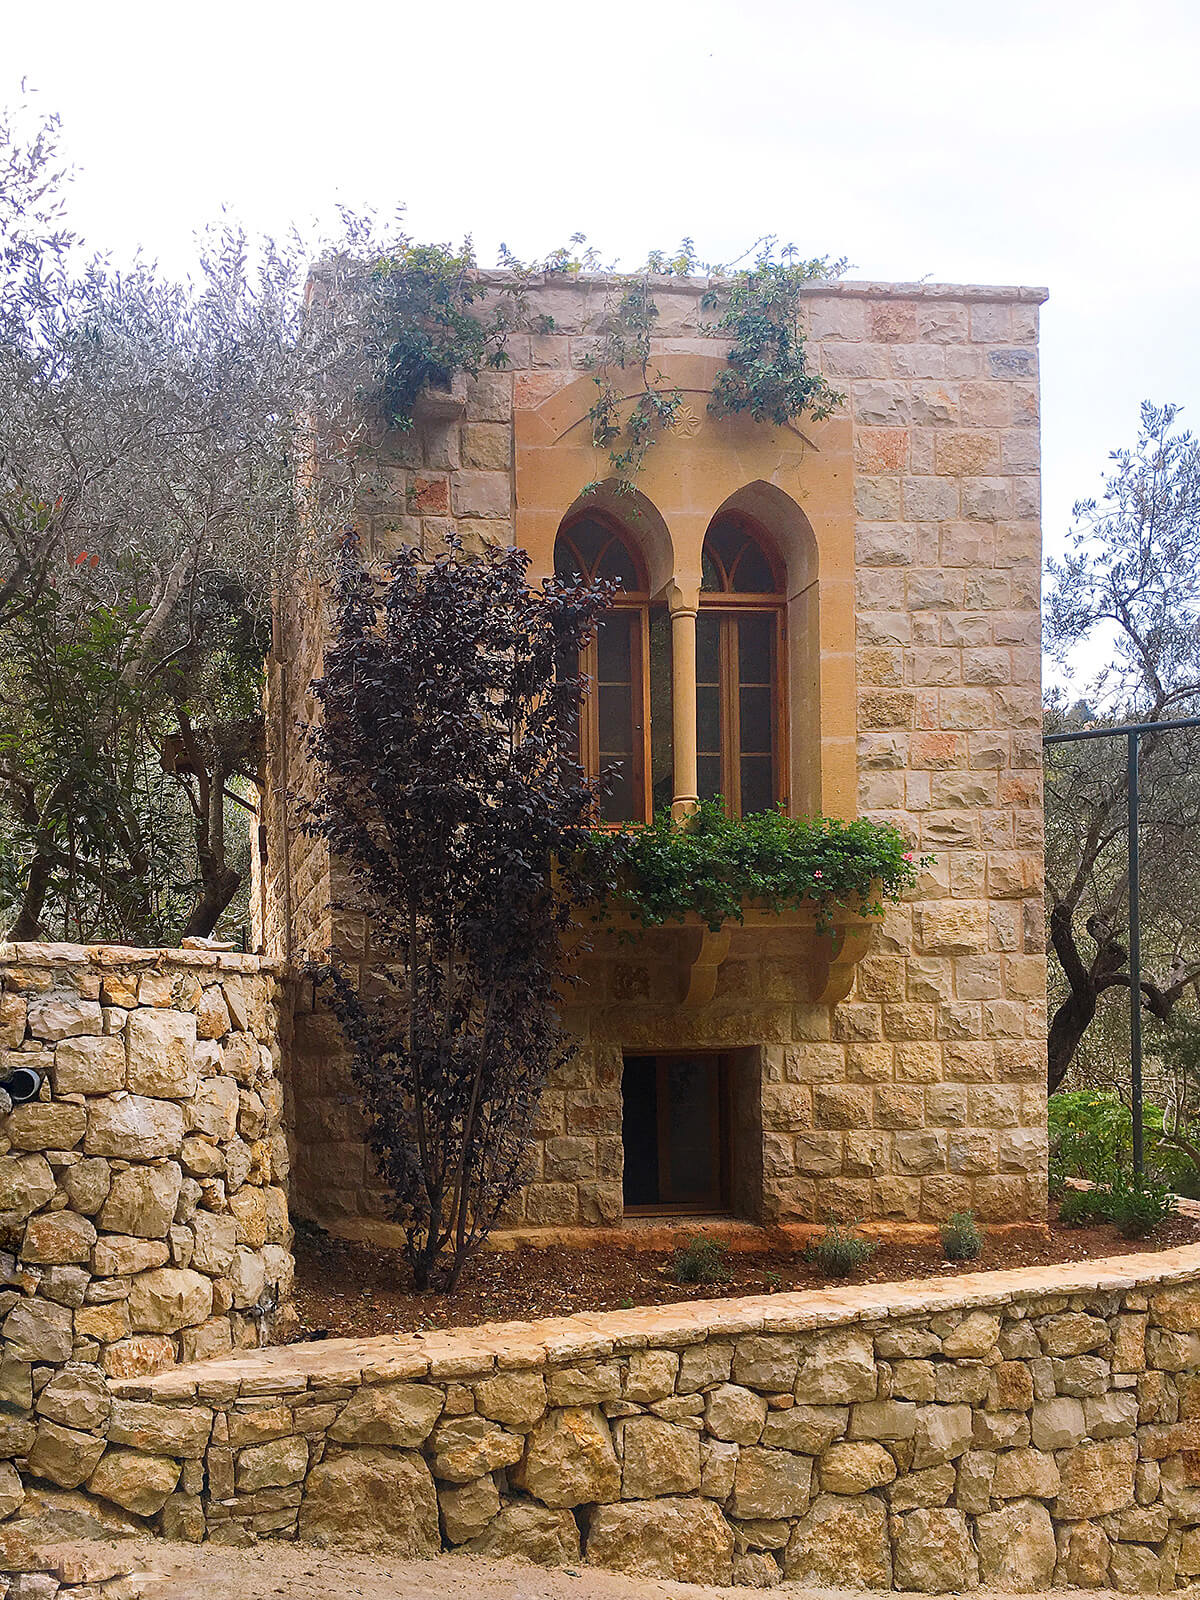 One of Bouyouti's villas for rent in Lebanon's Chouf district